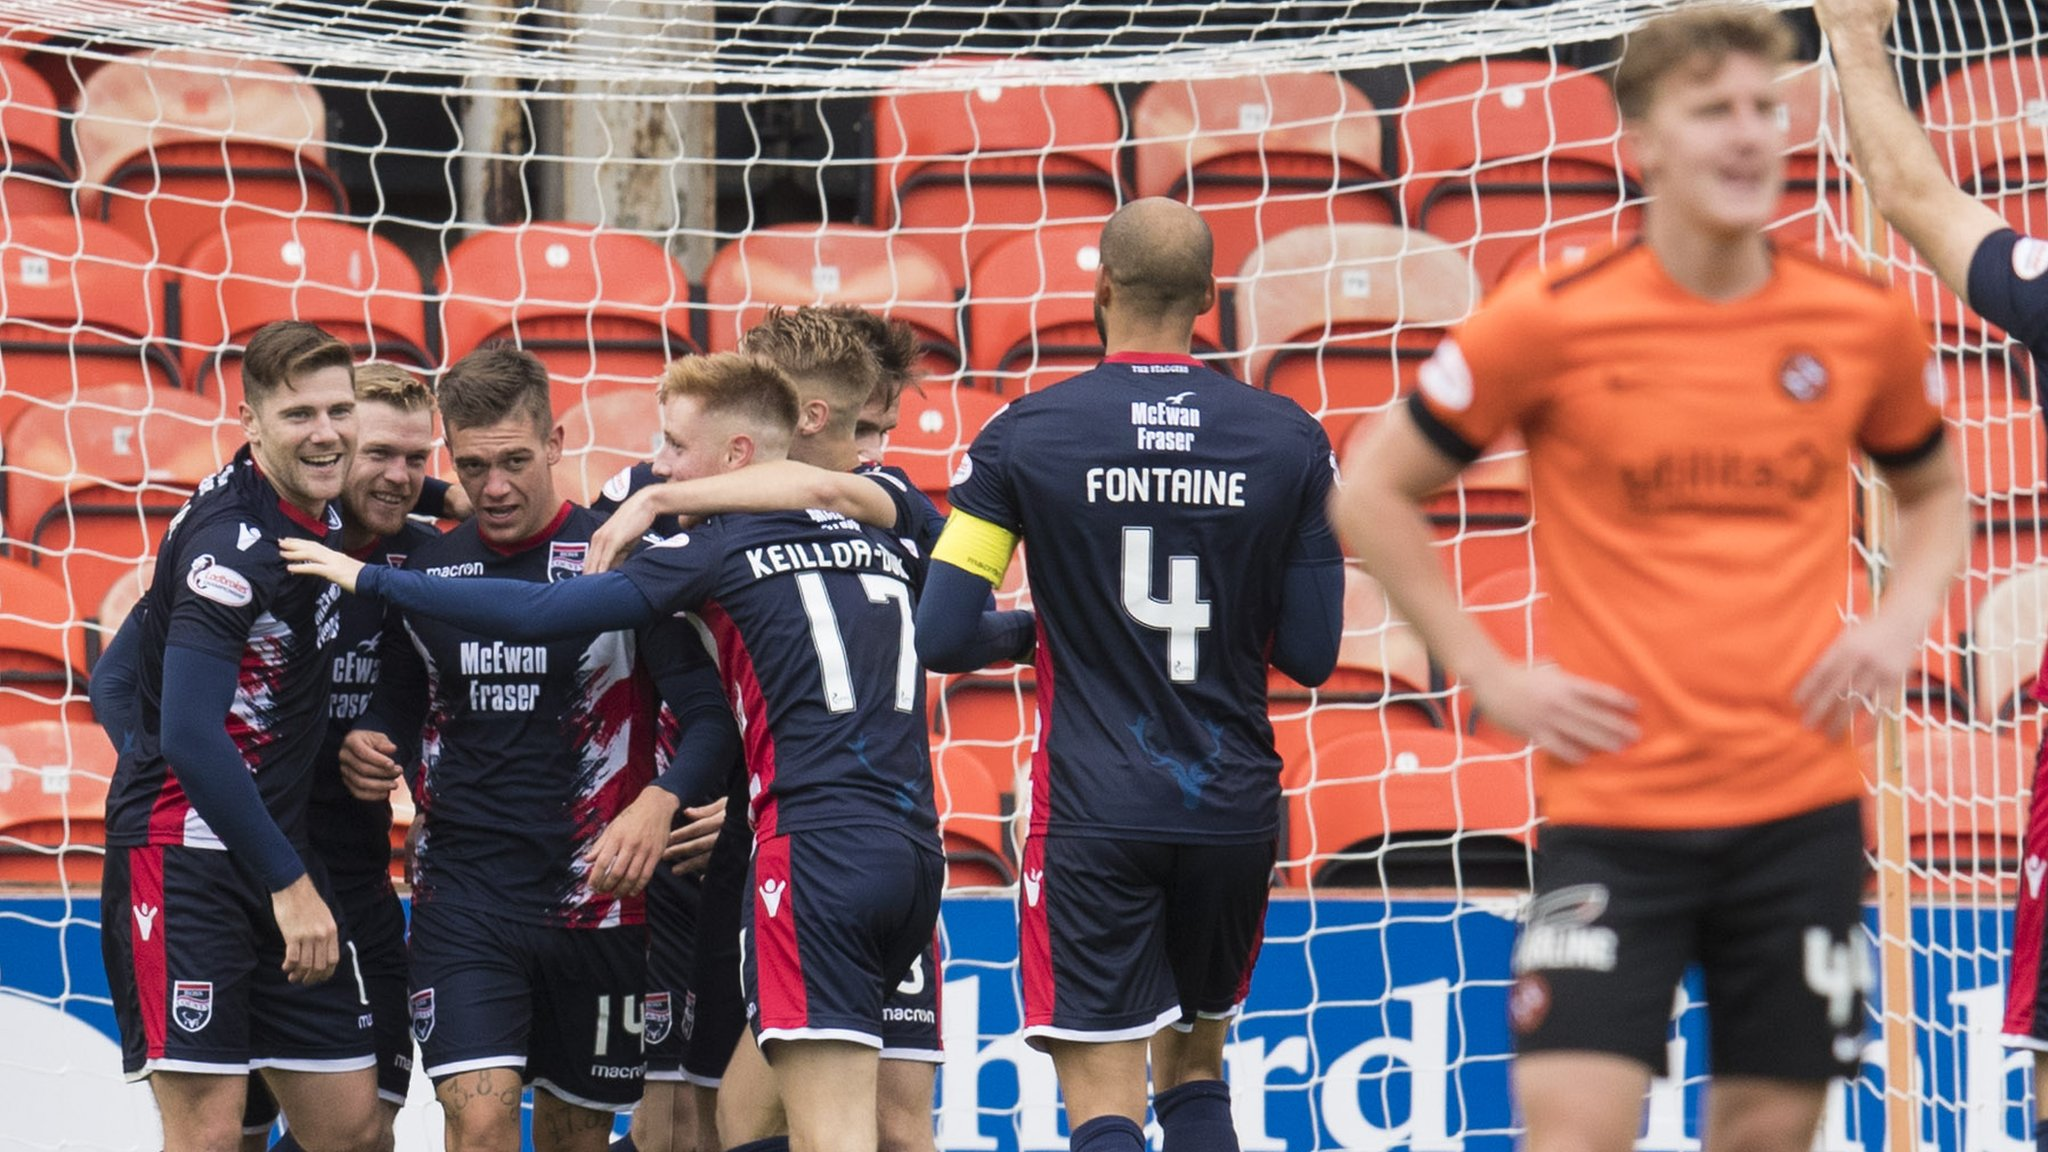 Dundee Utd 1-5 Ross County: Csaba Laszlo's future in fresh doubt